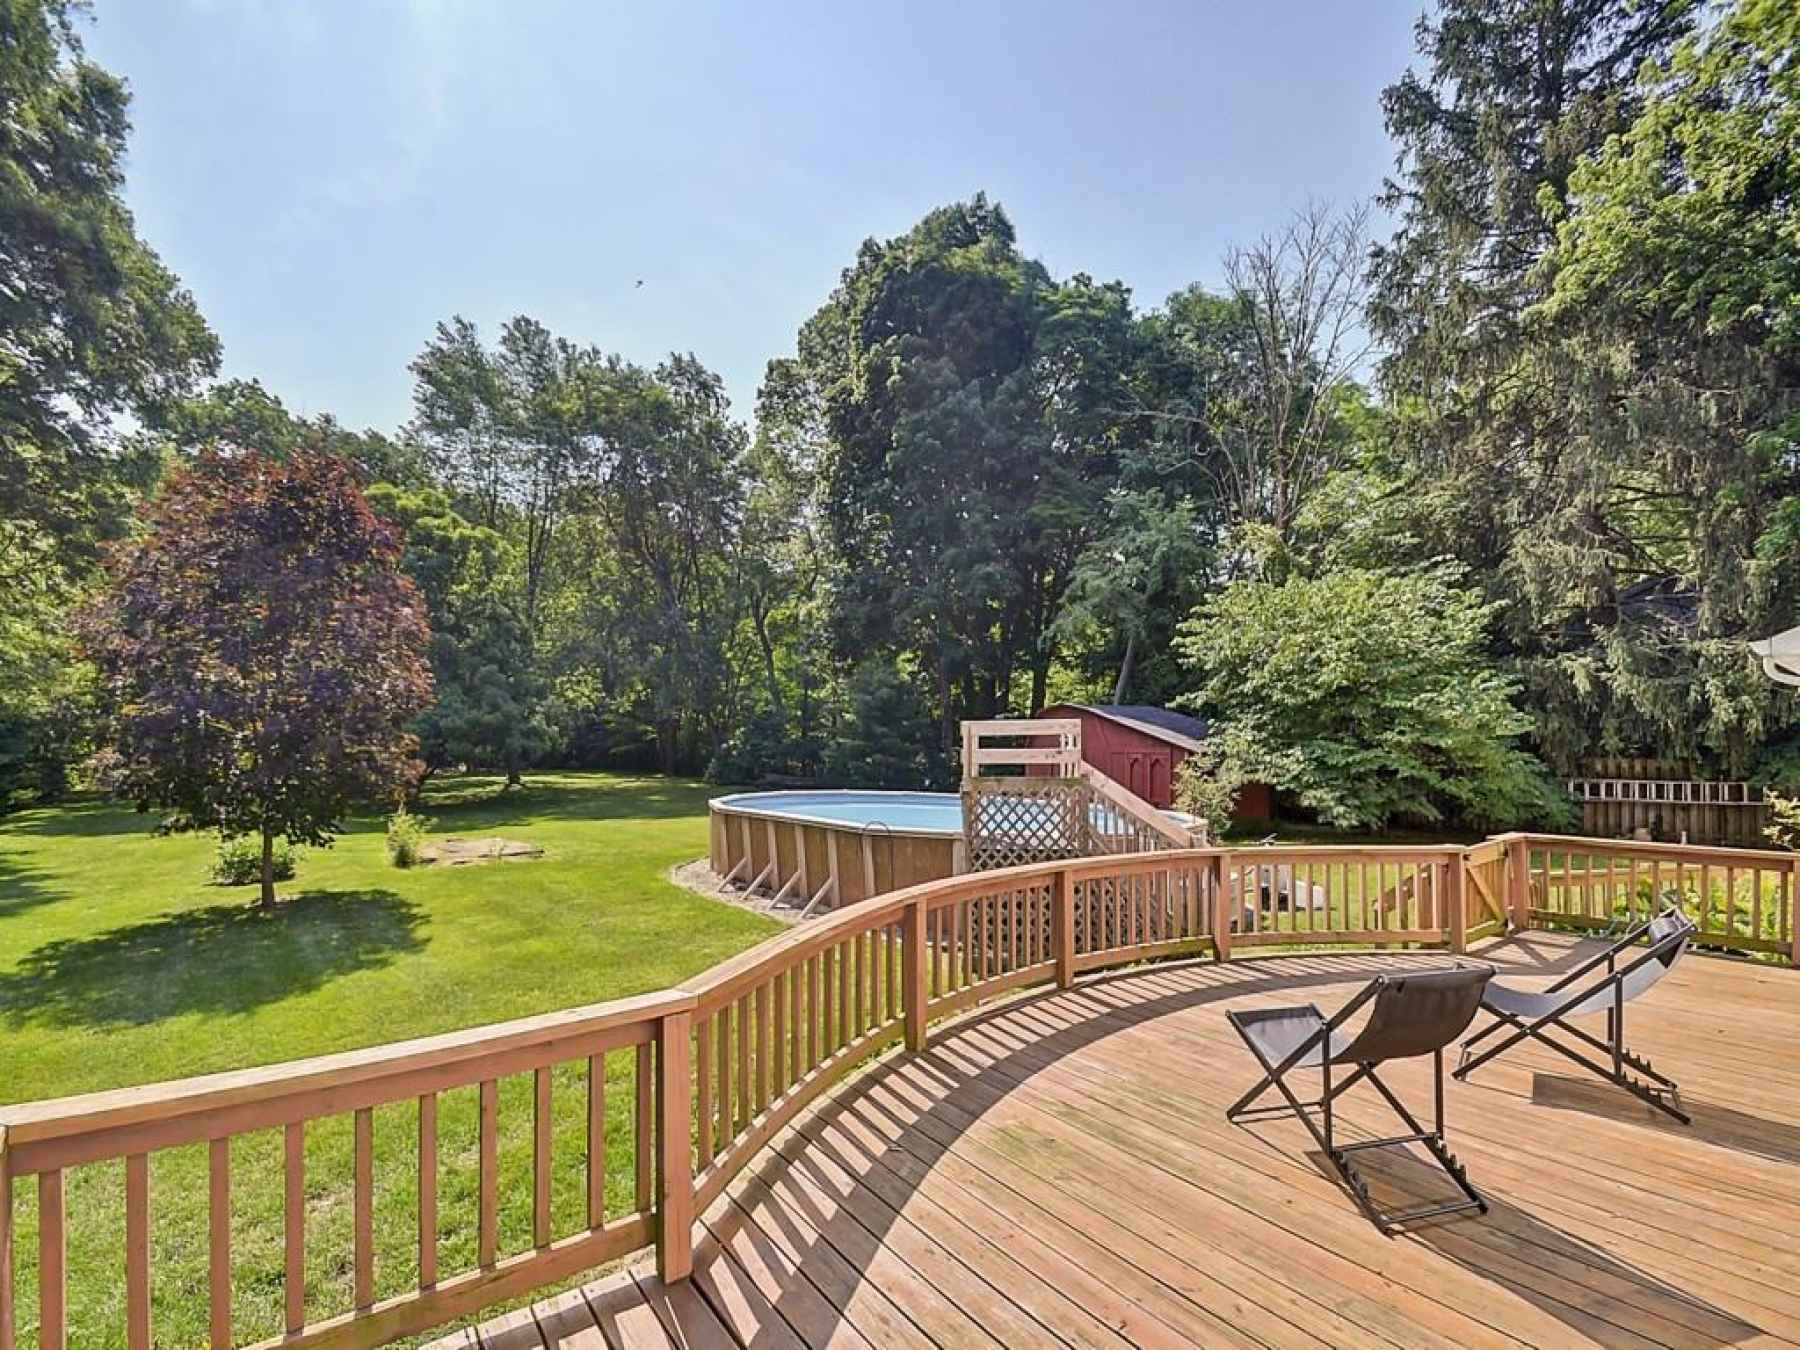 Great deck off the back on the home.